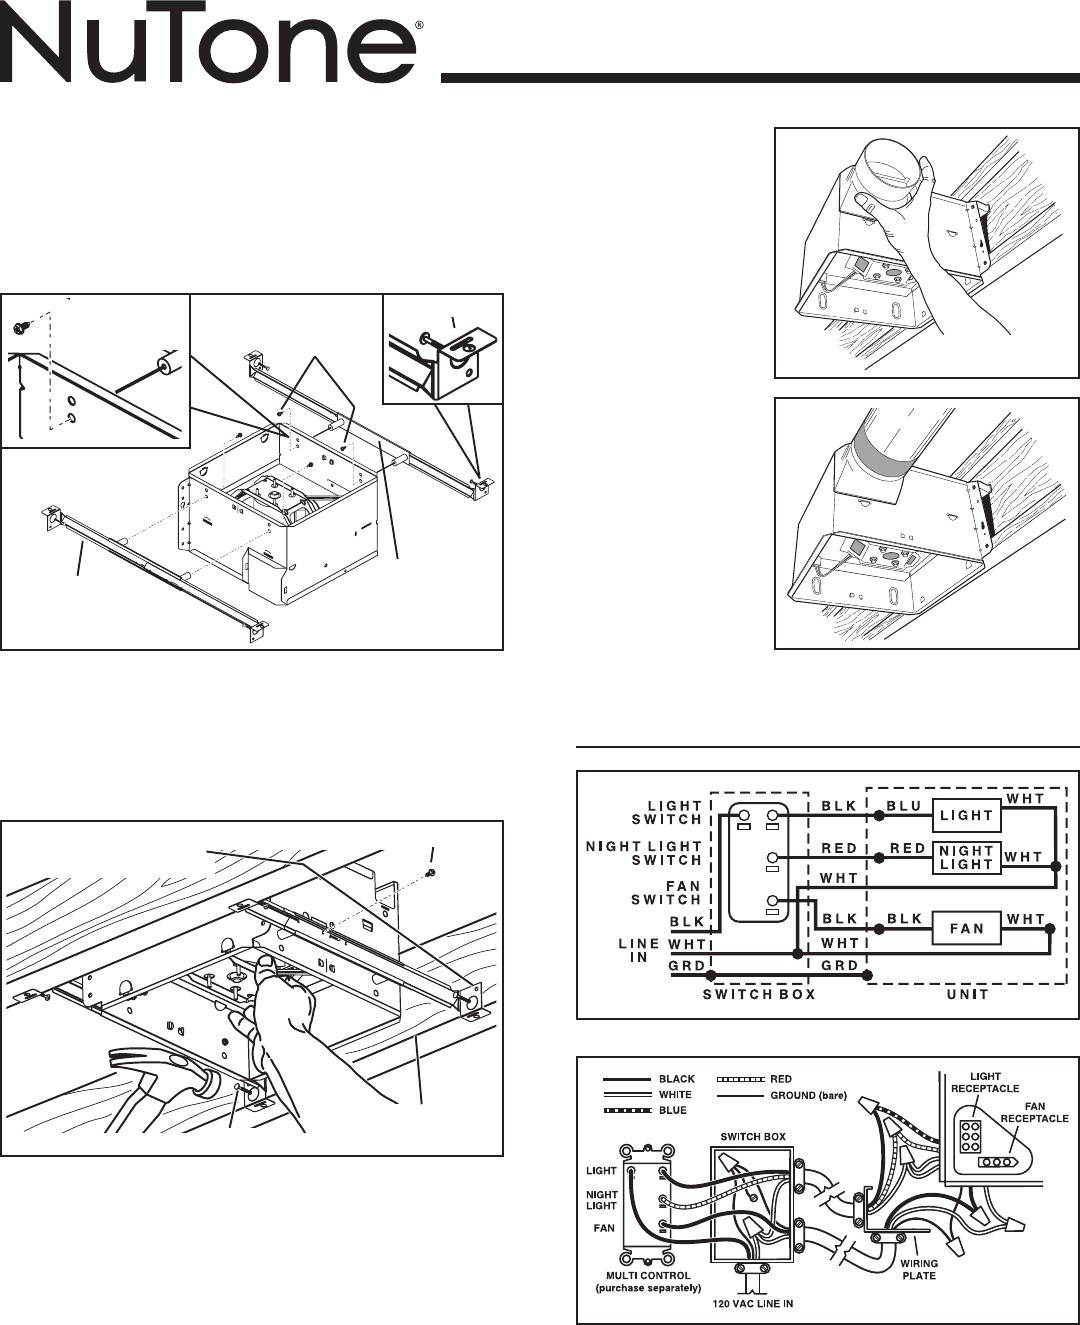 Nutone doorbell wiring diagram new wiring diagram image fancy door chime wiring diagram frieze diagram wiring ideas asfbconference2016 Images